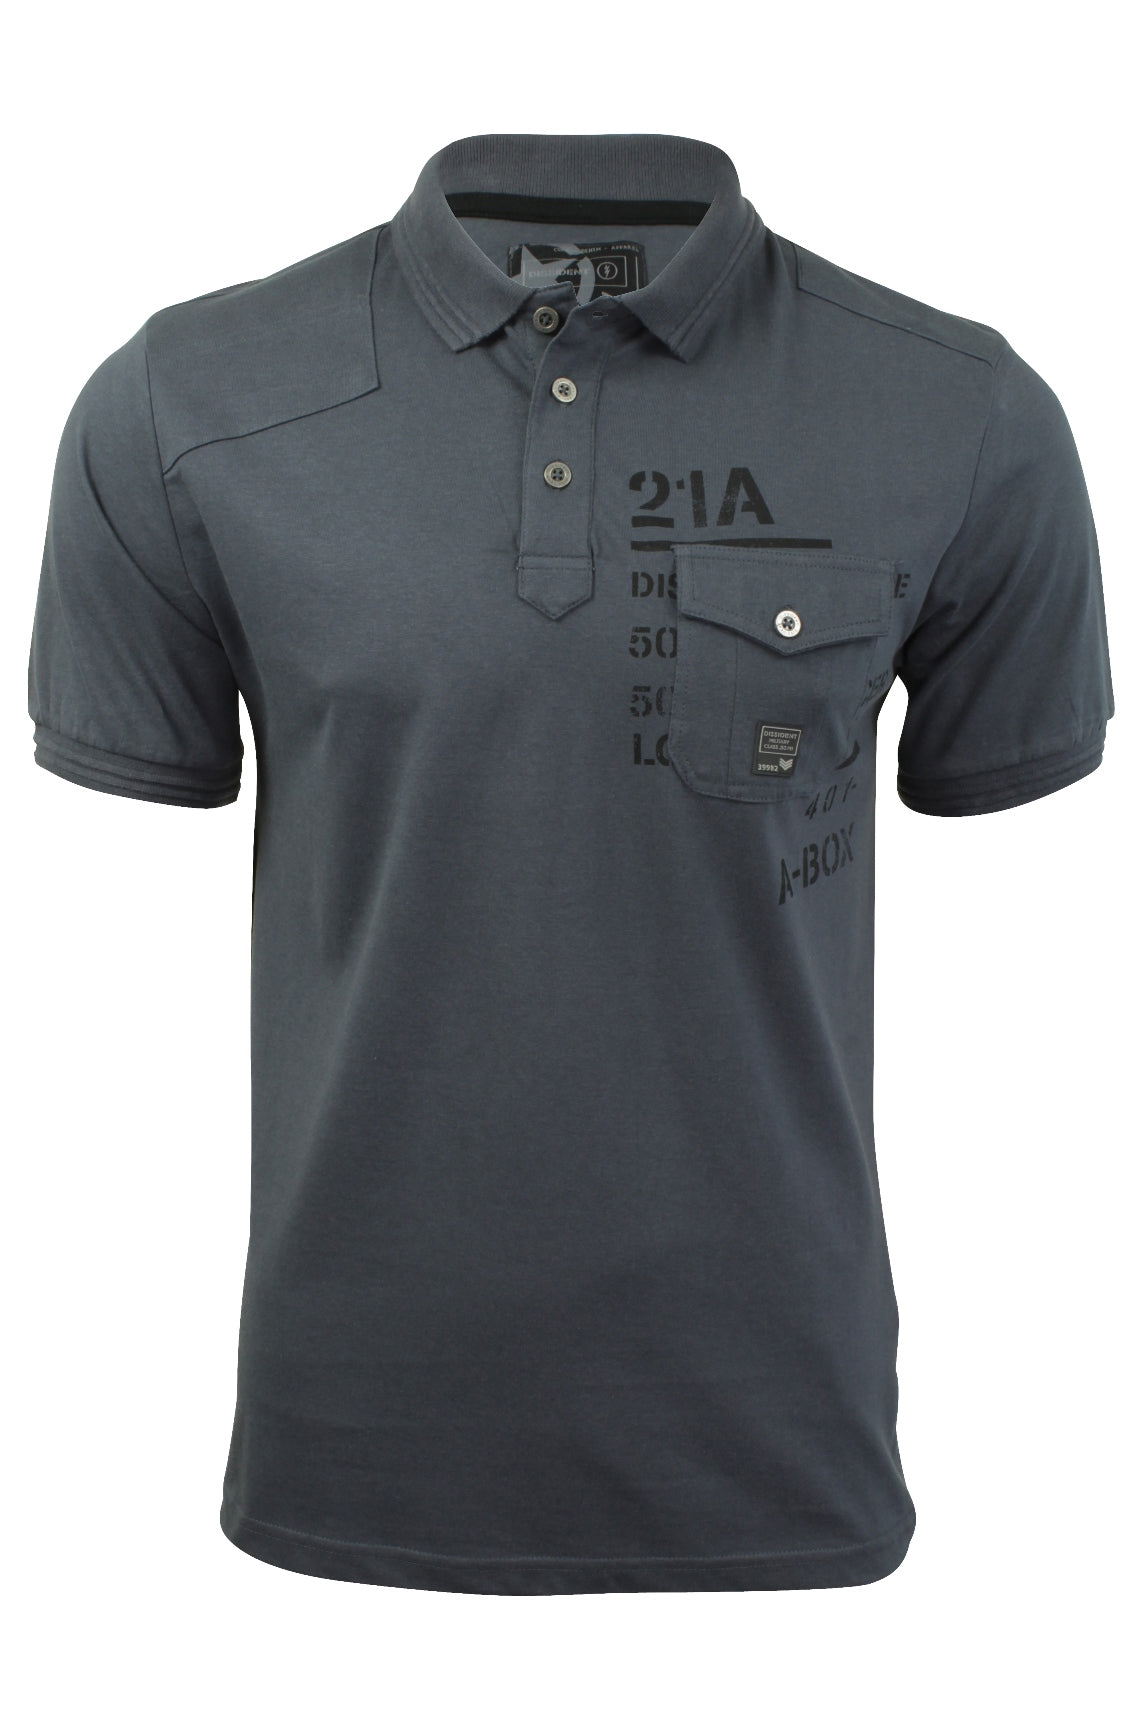 Mens Polo T-Shirt by Dissident 'Milicia' Short Sleeved-2